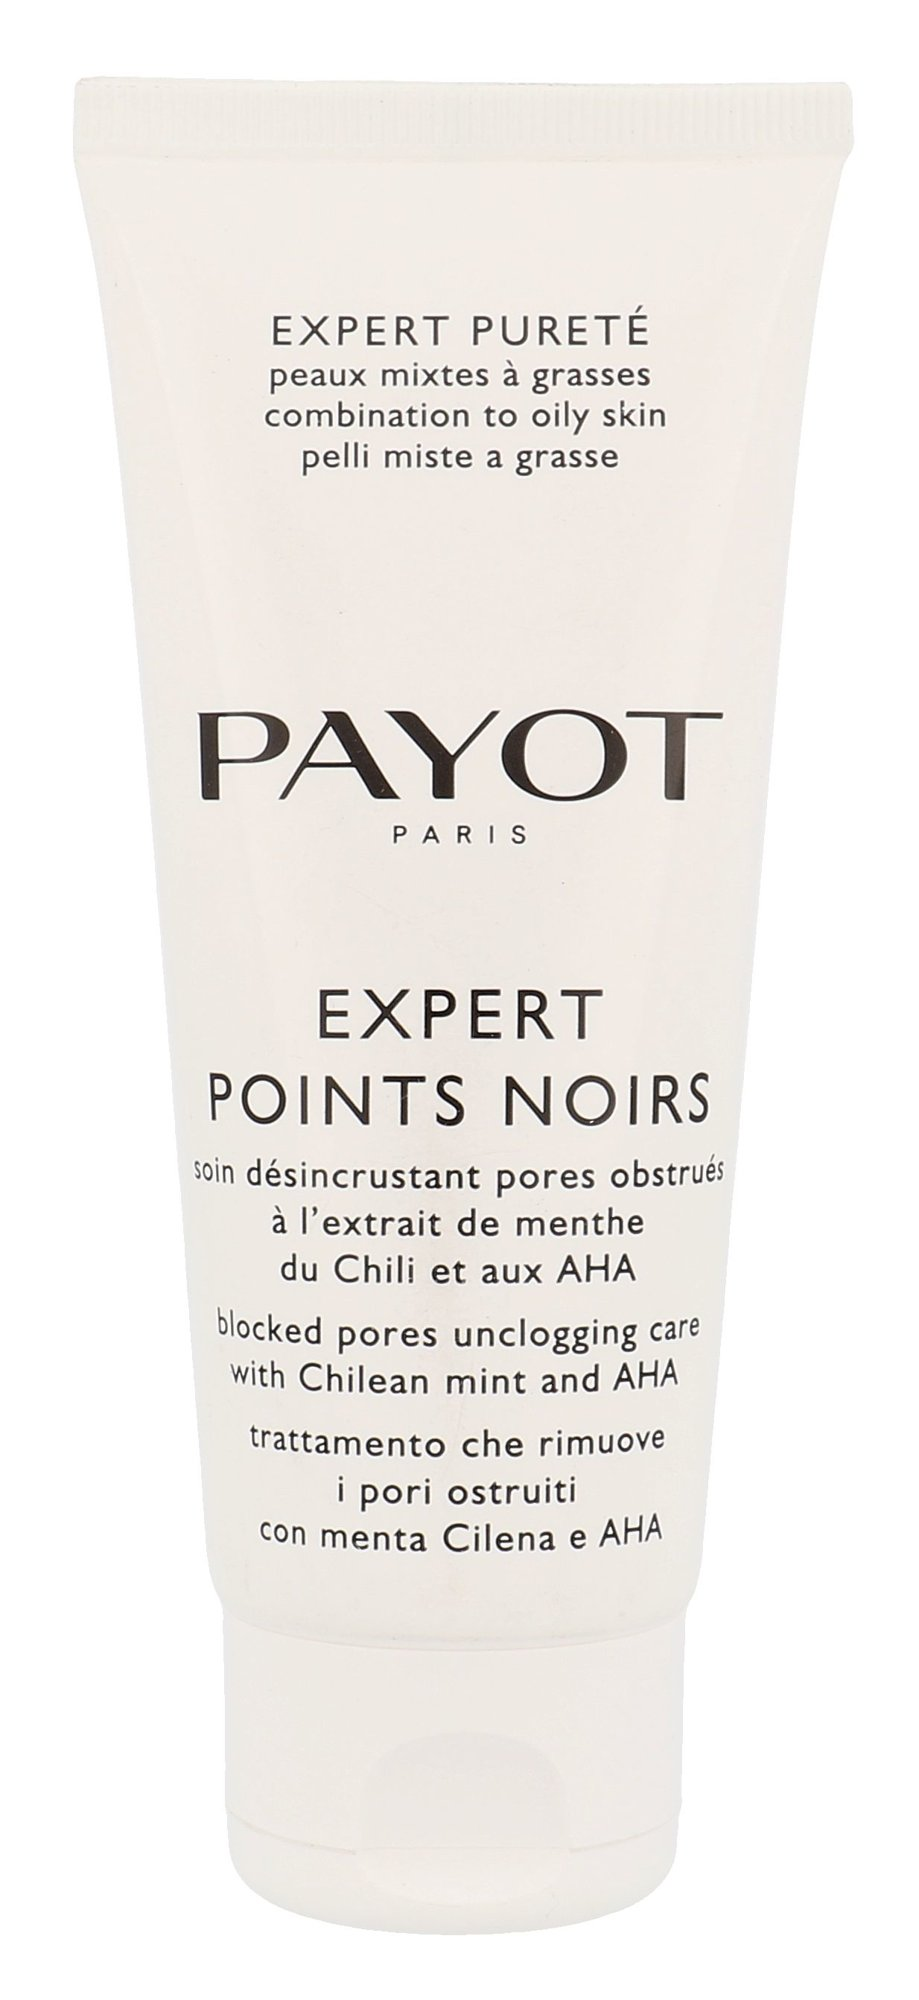 PAYOT Expert Points Noirs Cosmetic 100ml  Blocked Pores Unclogging Care